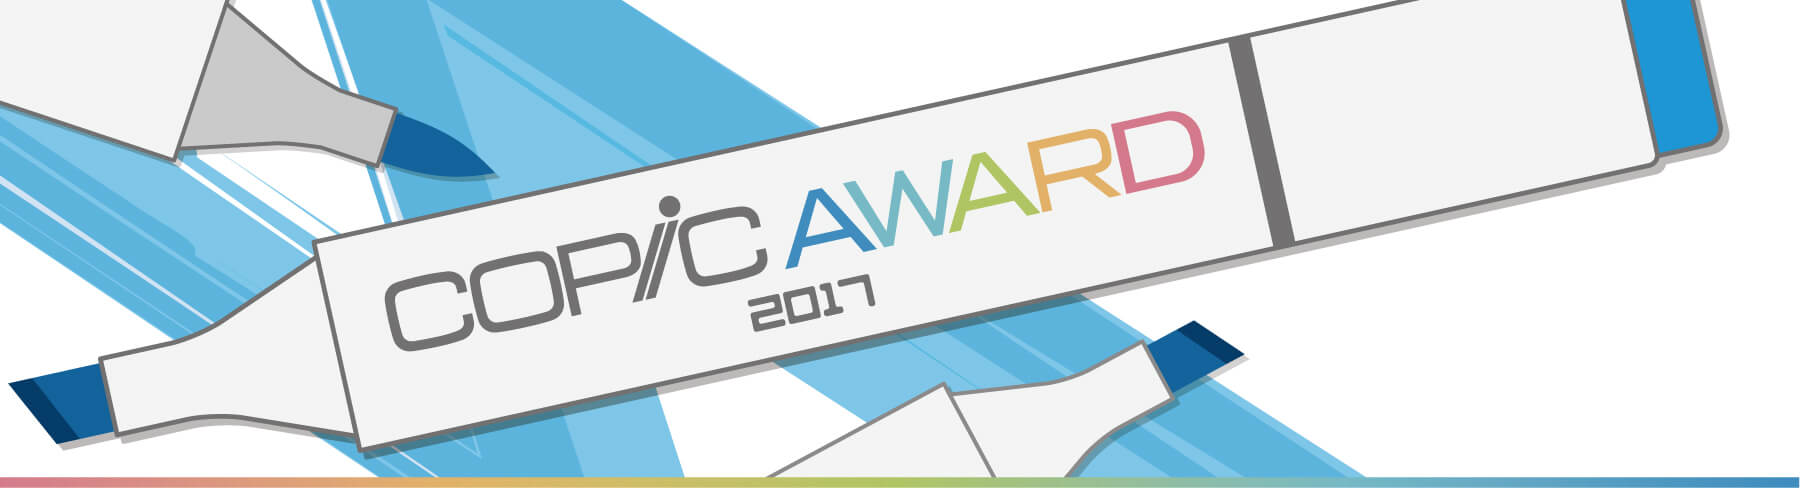 COPIC AWARD 2017 - connecting COPIC fans all over the world by such works, and making the drawing and production more fun